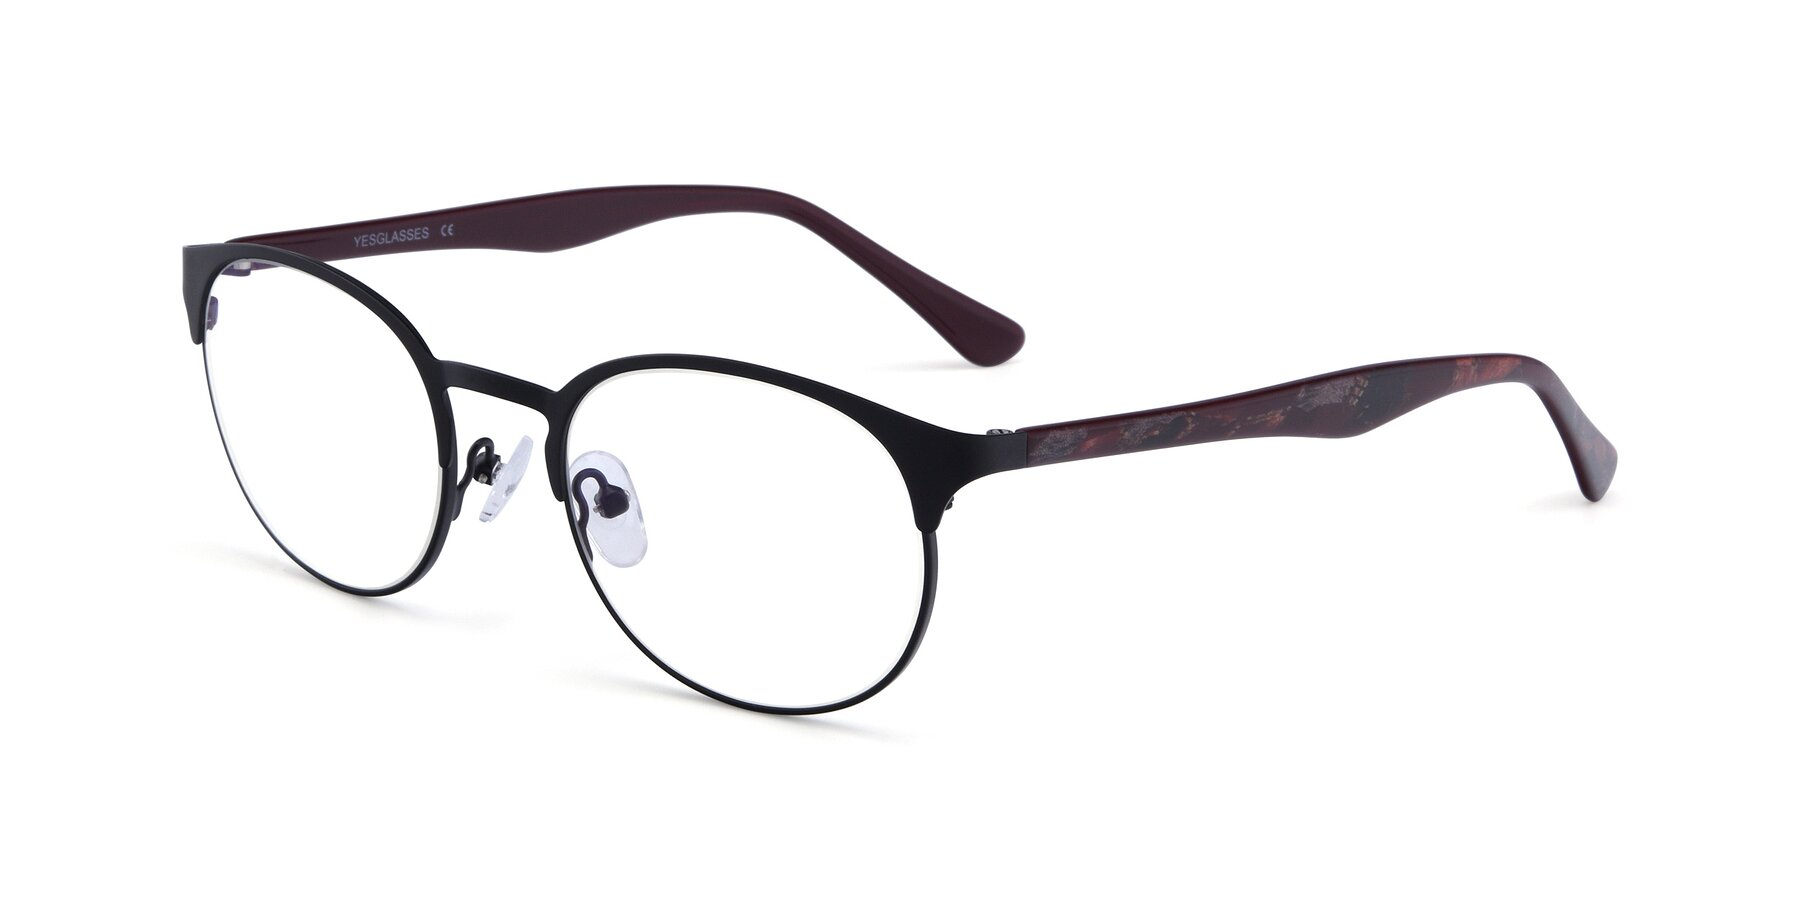 Angle of SR8026 in Black with Clear Blue Light Blocking Lenses